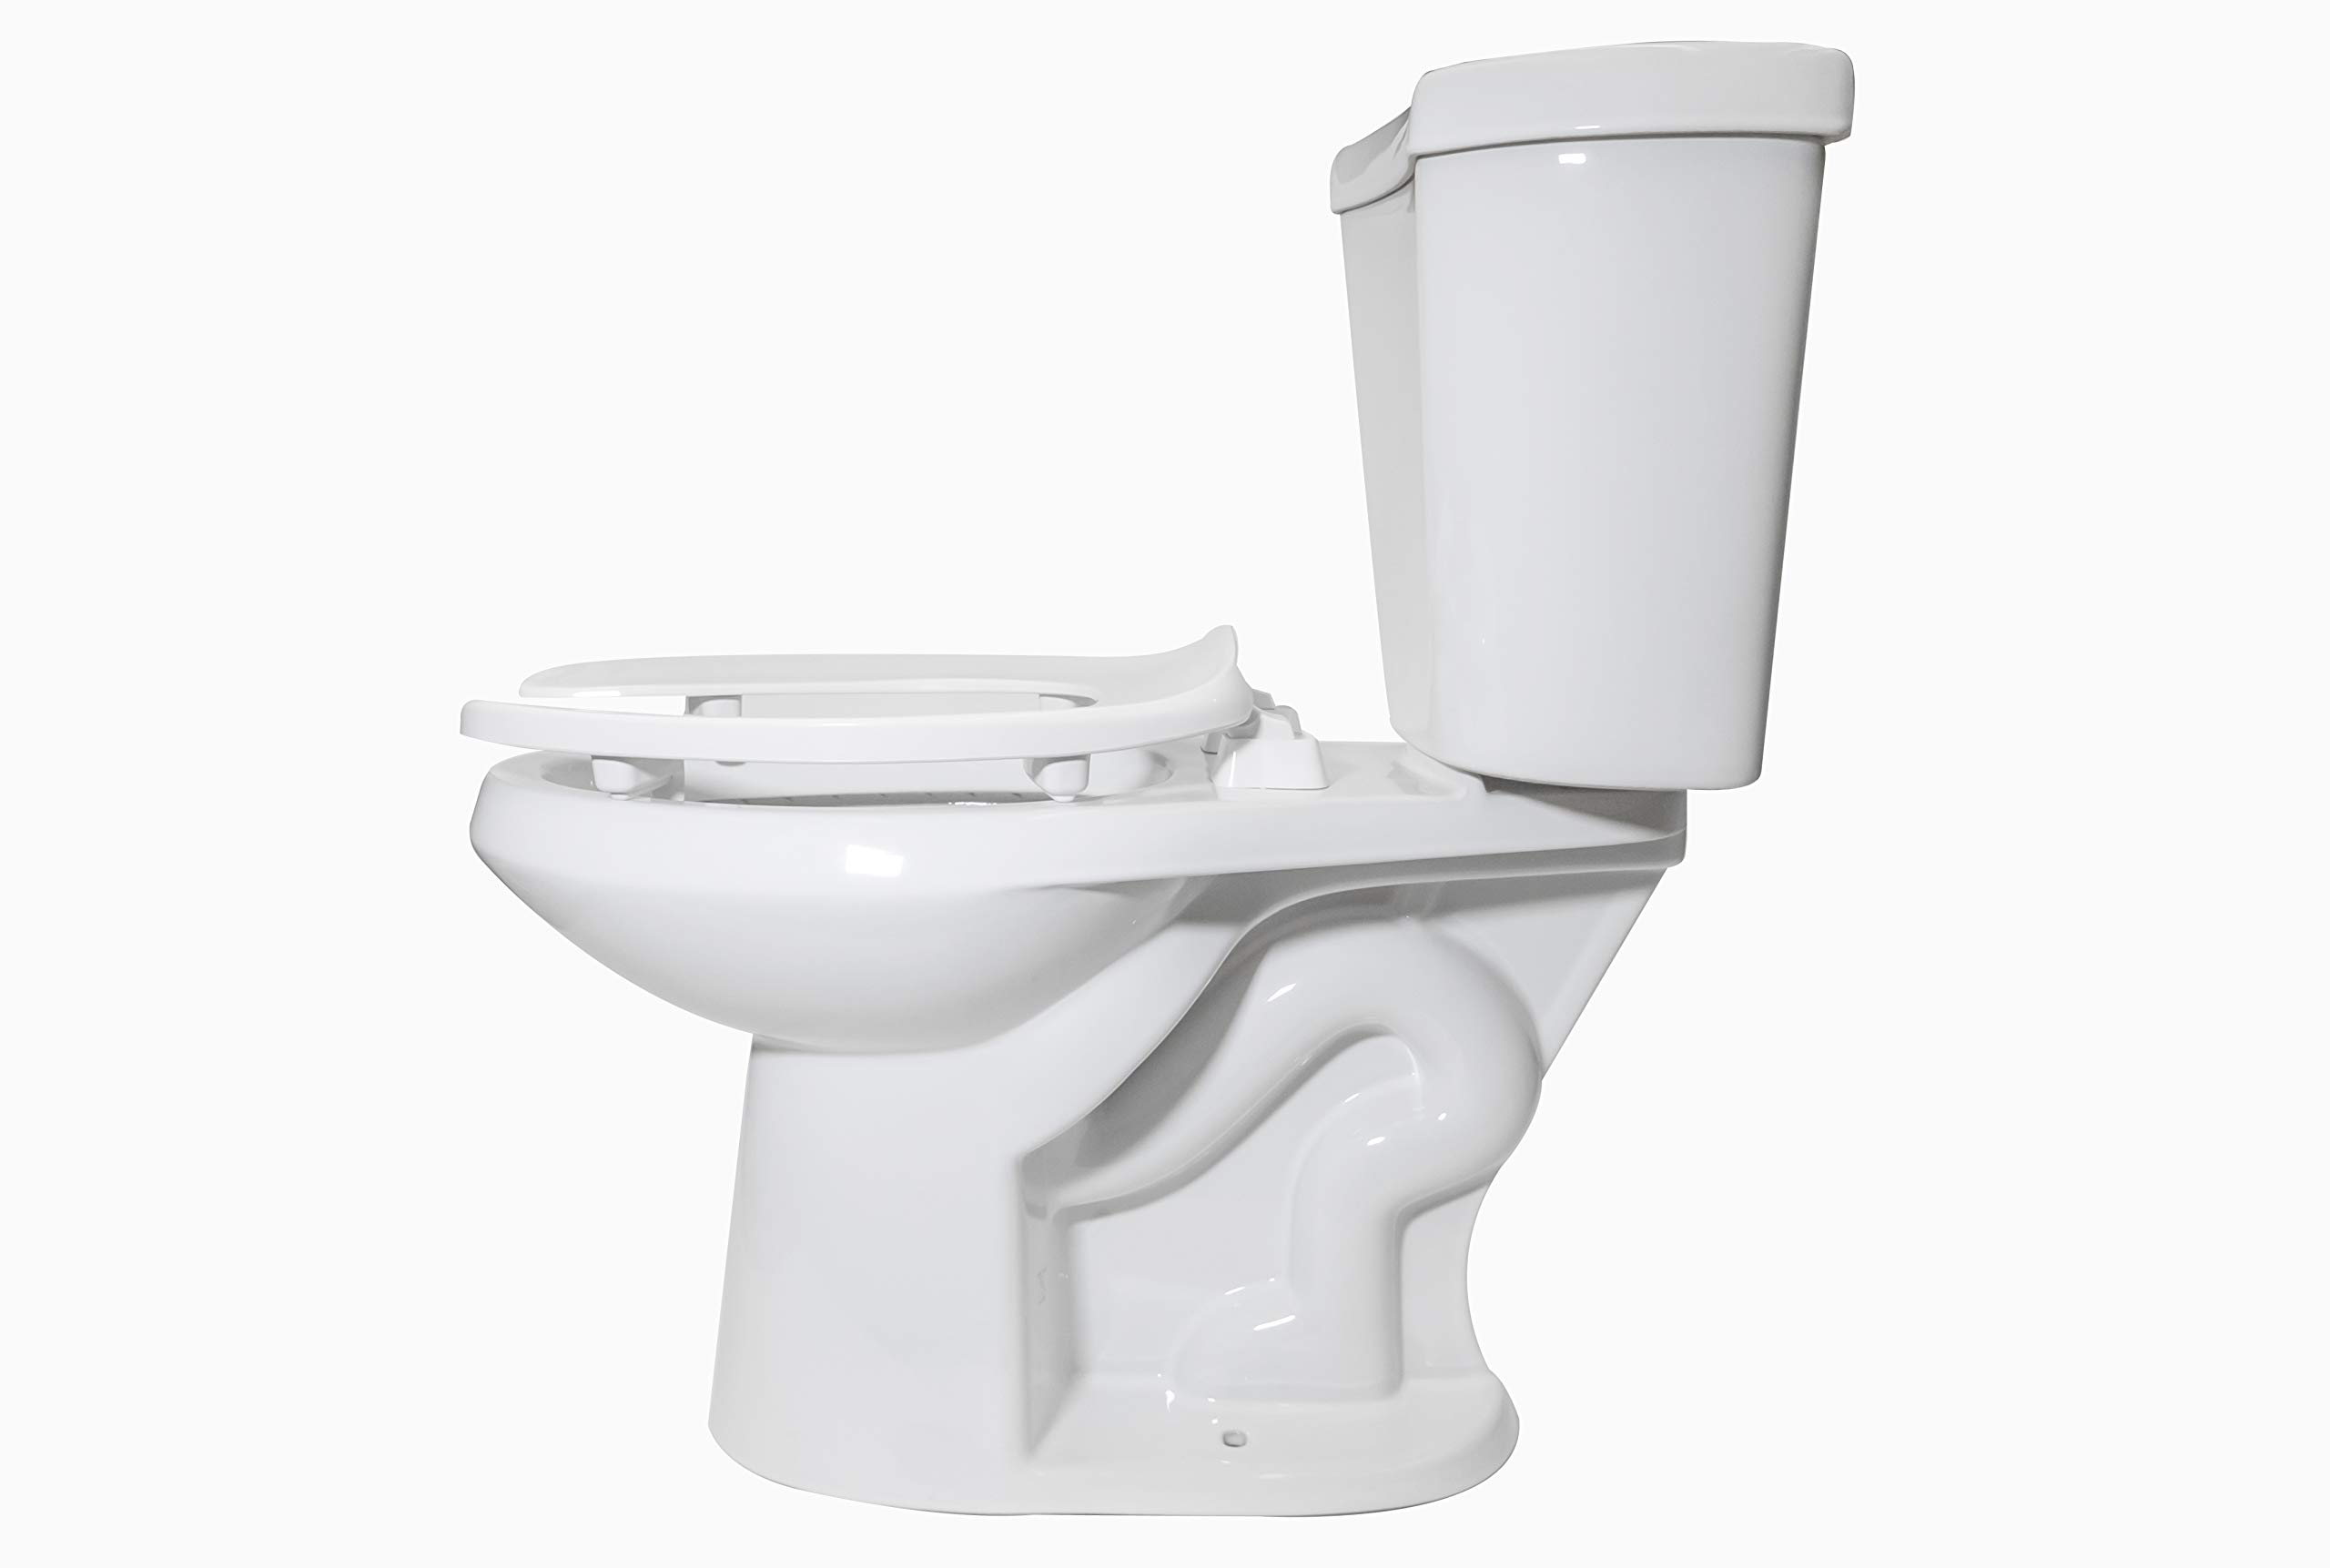 Centoco HL500STSCC-001 Elongated 2'' Lift, Raised Plastic Toilet Seat, Open Front No Cover, ADA Compliant Handicap Medical Assistance Seat, Heavy Duty, White